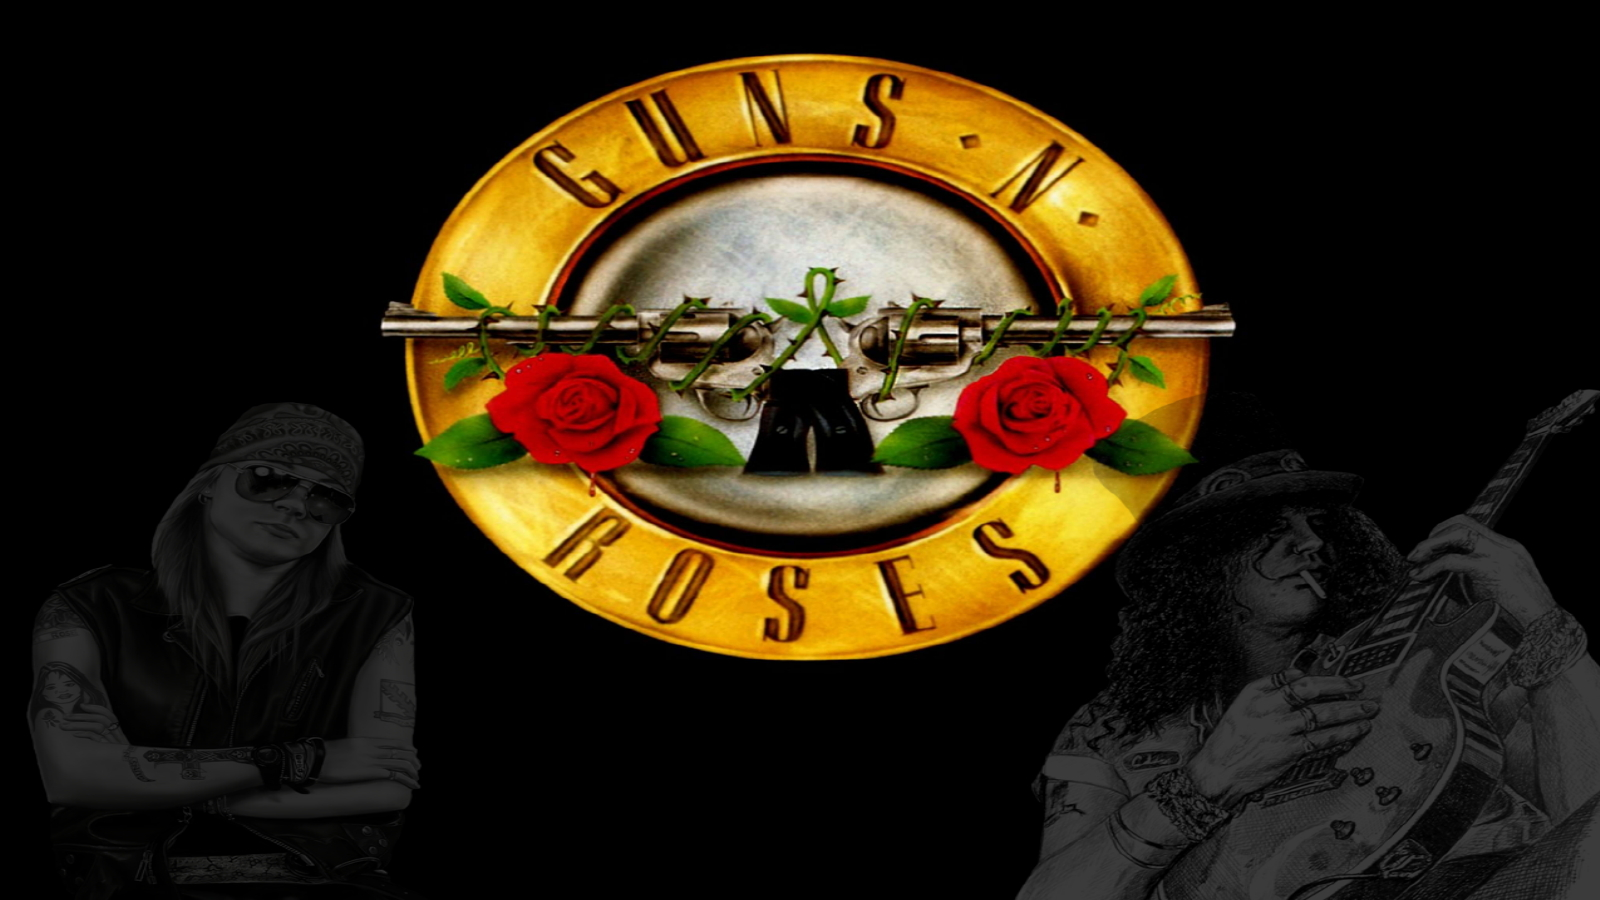 Music - Guns N Roses Wallpaper